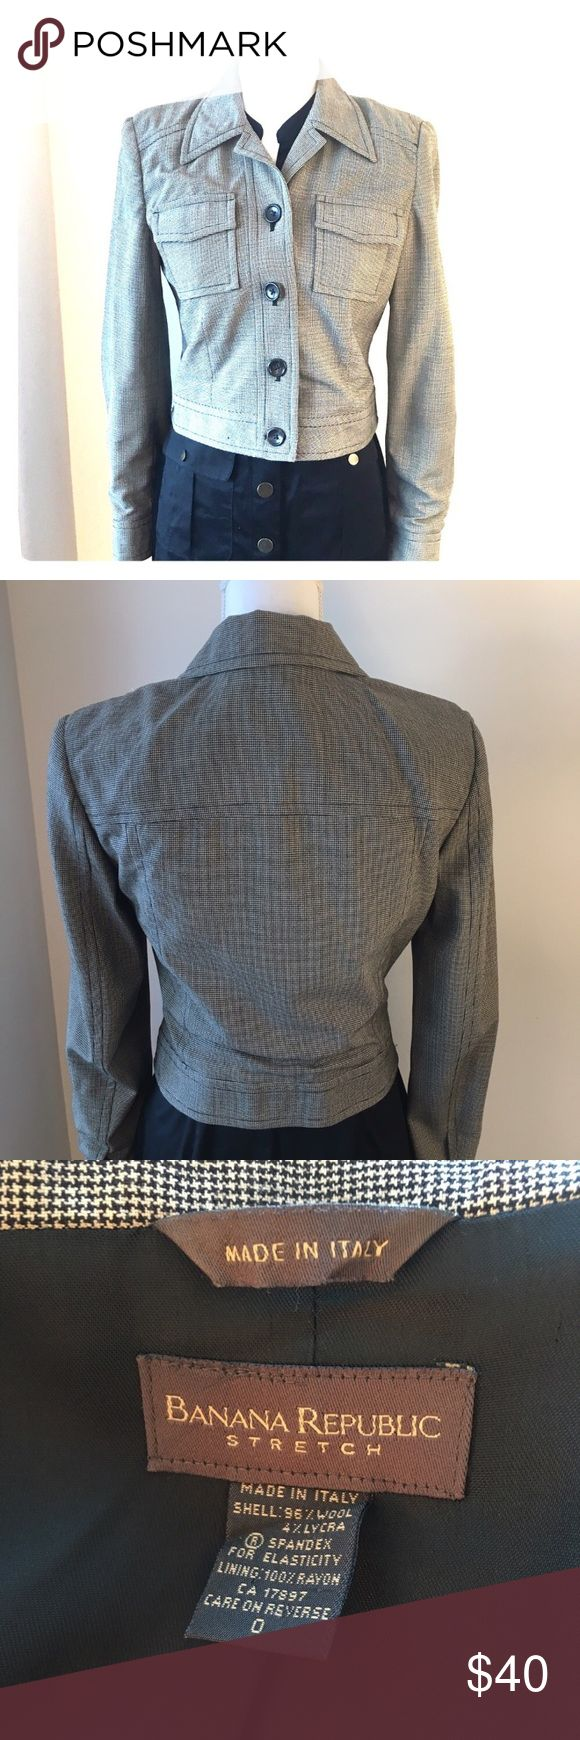 Banana Republic Black & Khaki Blazer in Size 0 Banana Republic Black & Khaki Checkered Stretch Blazer in a size 0.  Super fitted look, while still being comfortable & stretchy. Paired in pic with Safari dress sold in another listing. Banana Republic Jackets & Coats Blazers